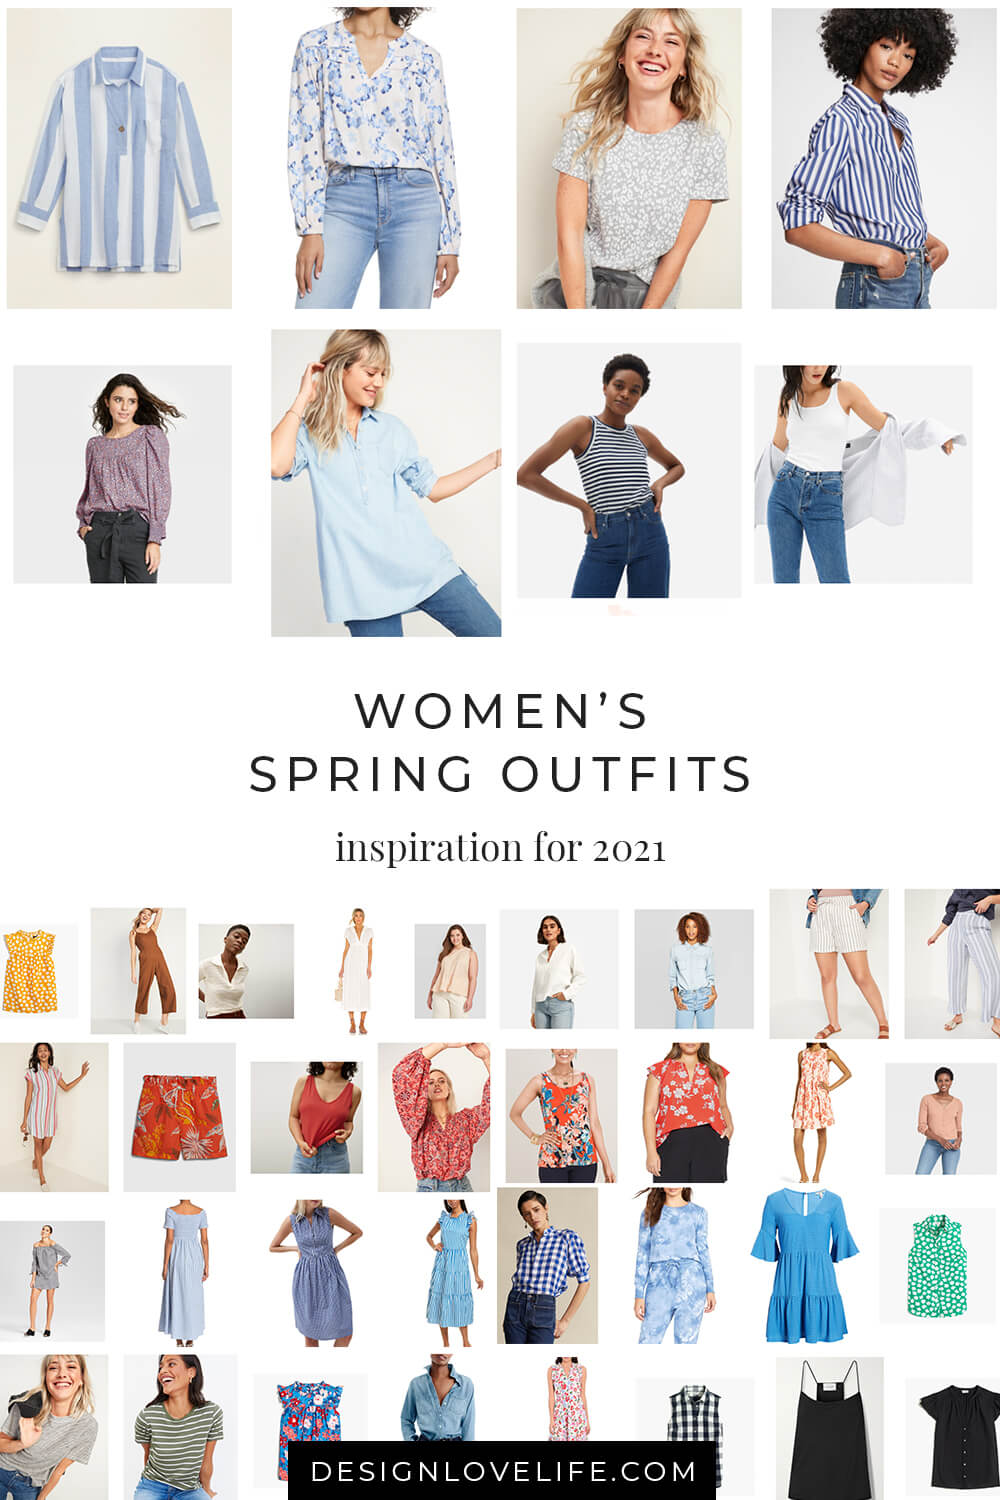 Spring Outfits Inspiration 2021. Women's Fashion. Annie Johnson - Design Love Life.